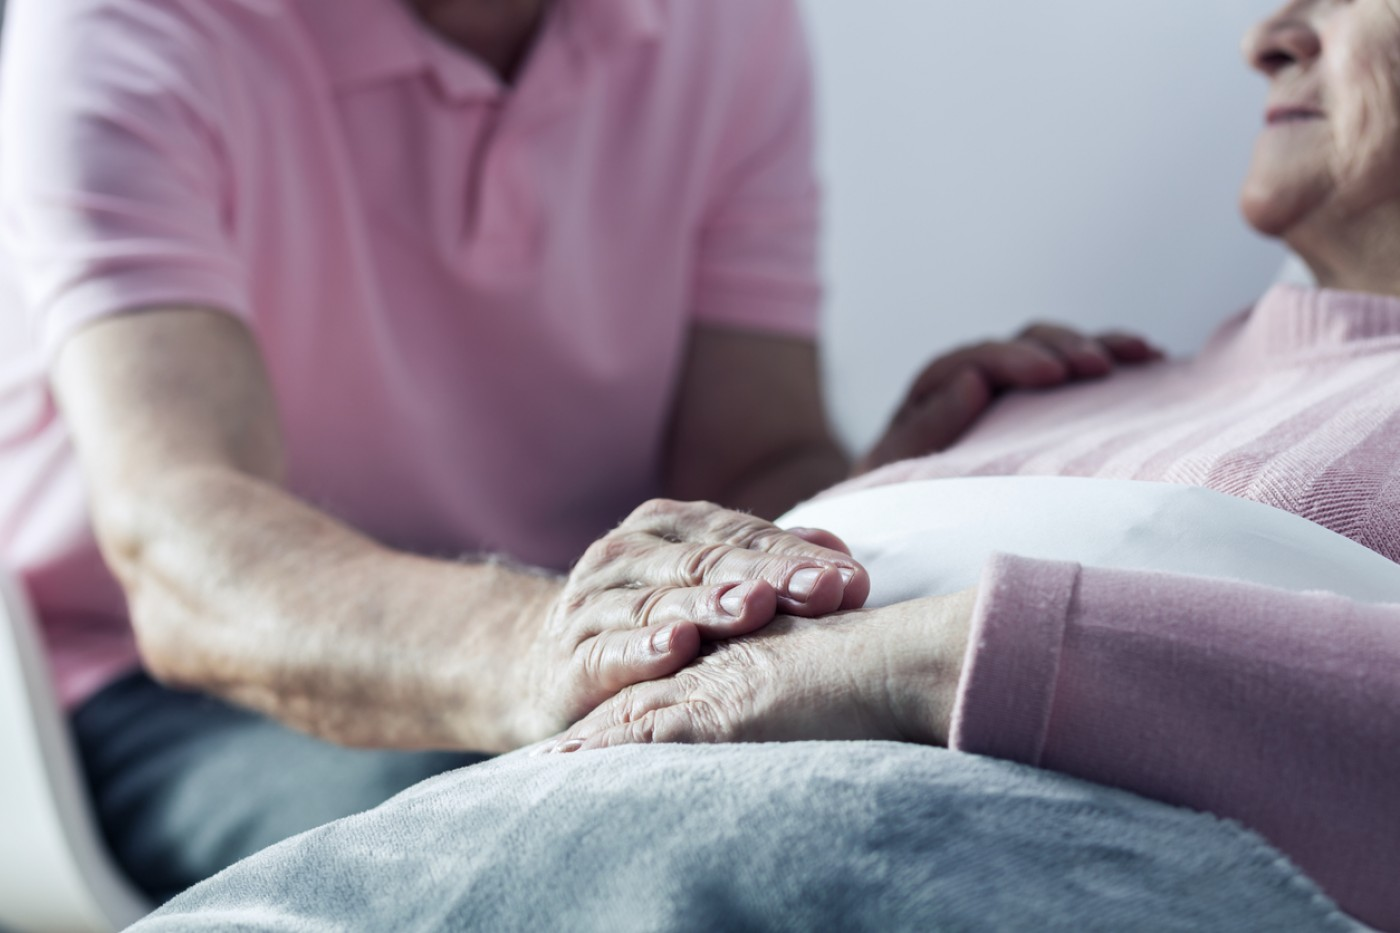 Premier Health Care, quality home care in Mazarrón, Camposol and south-west Murcia